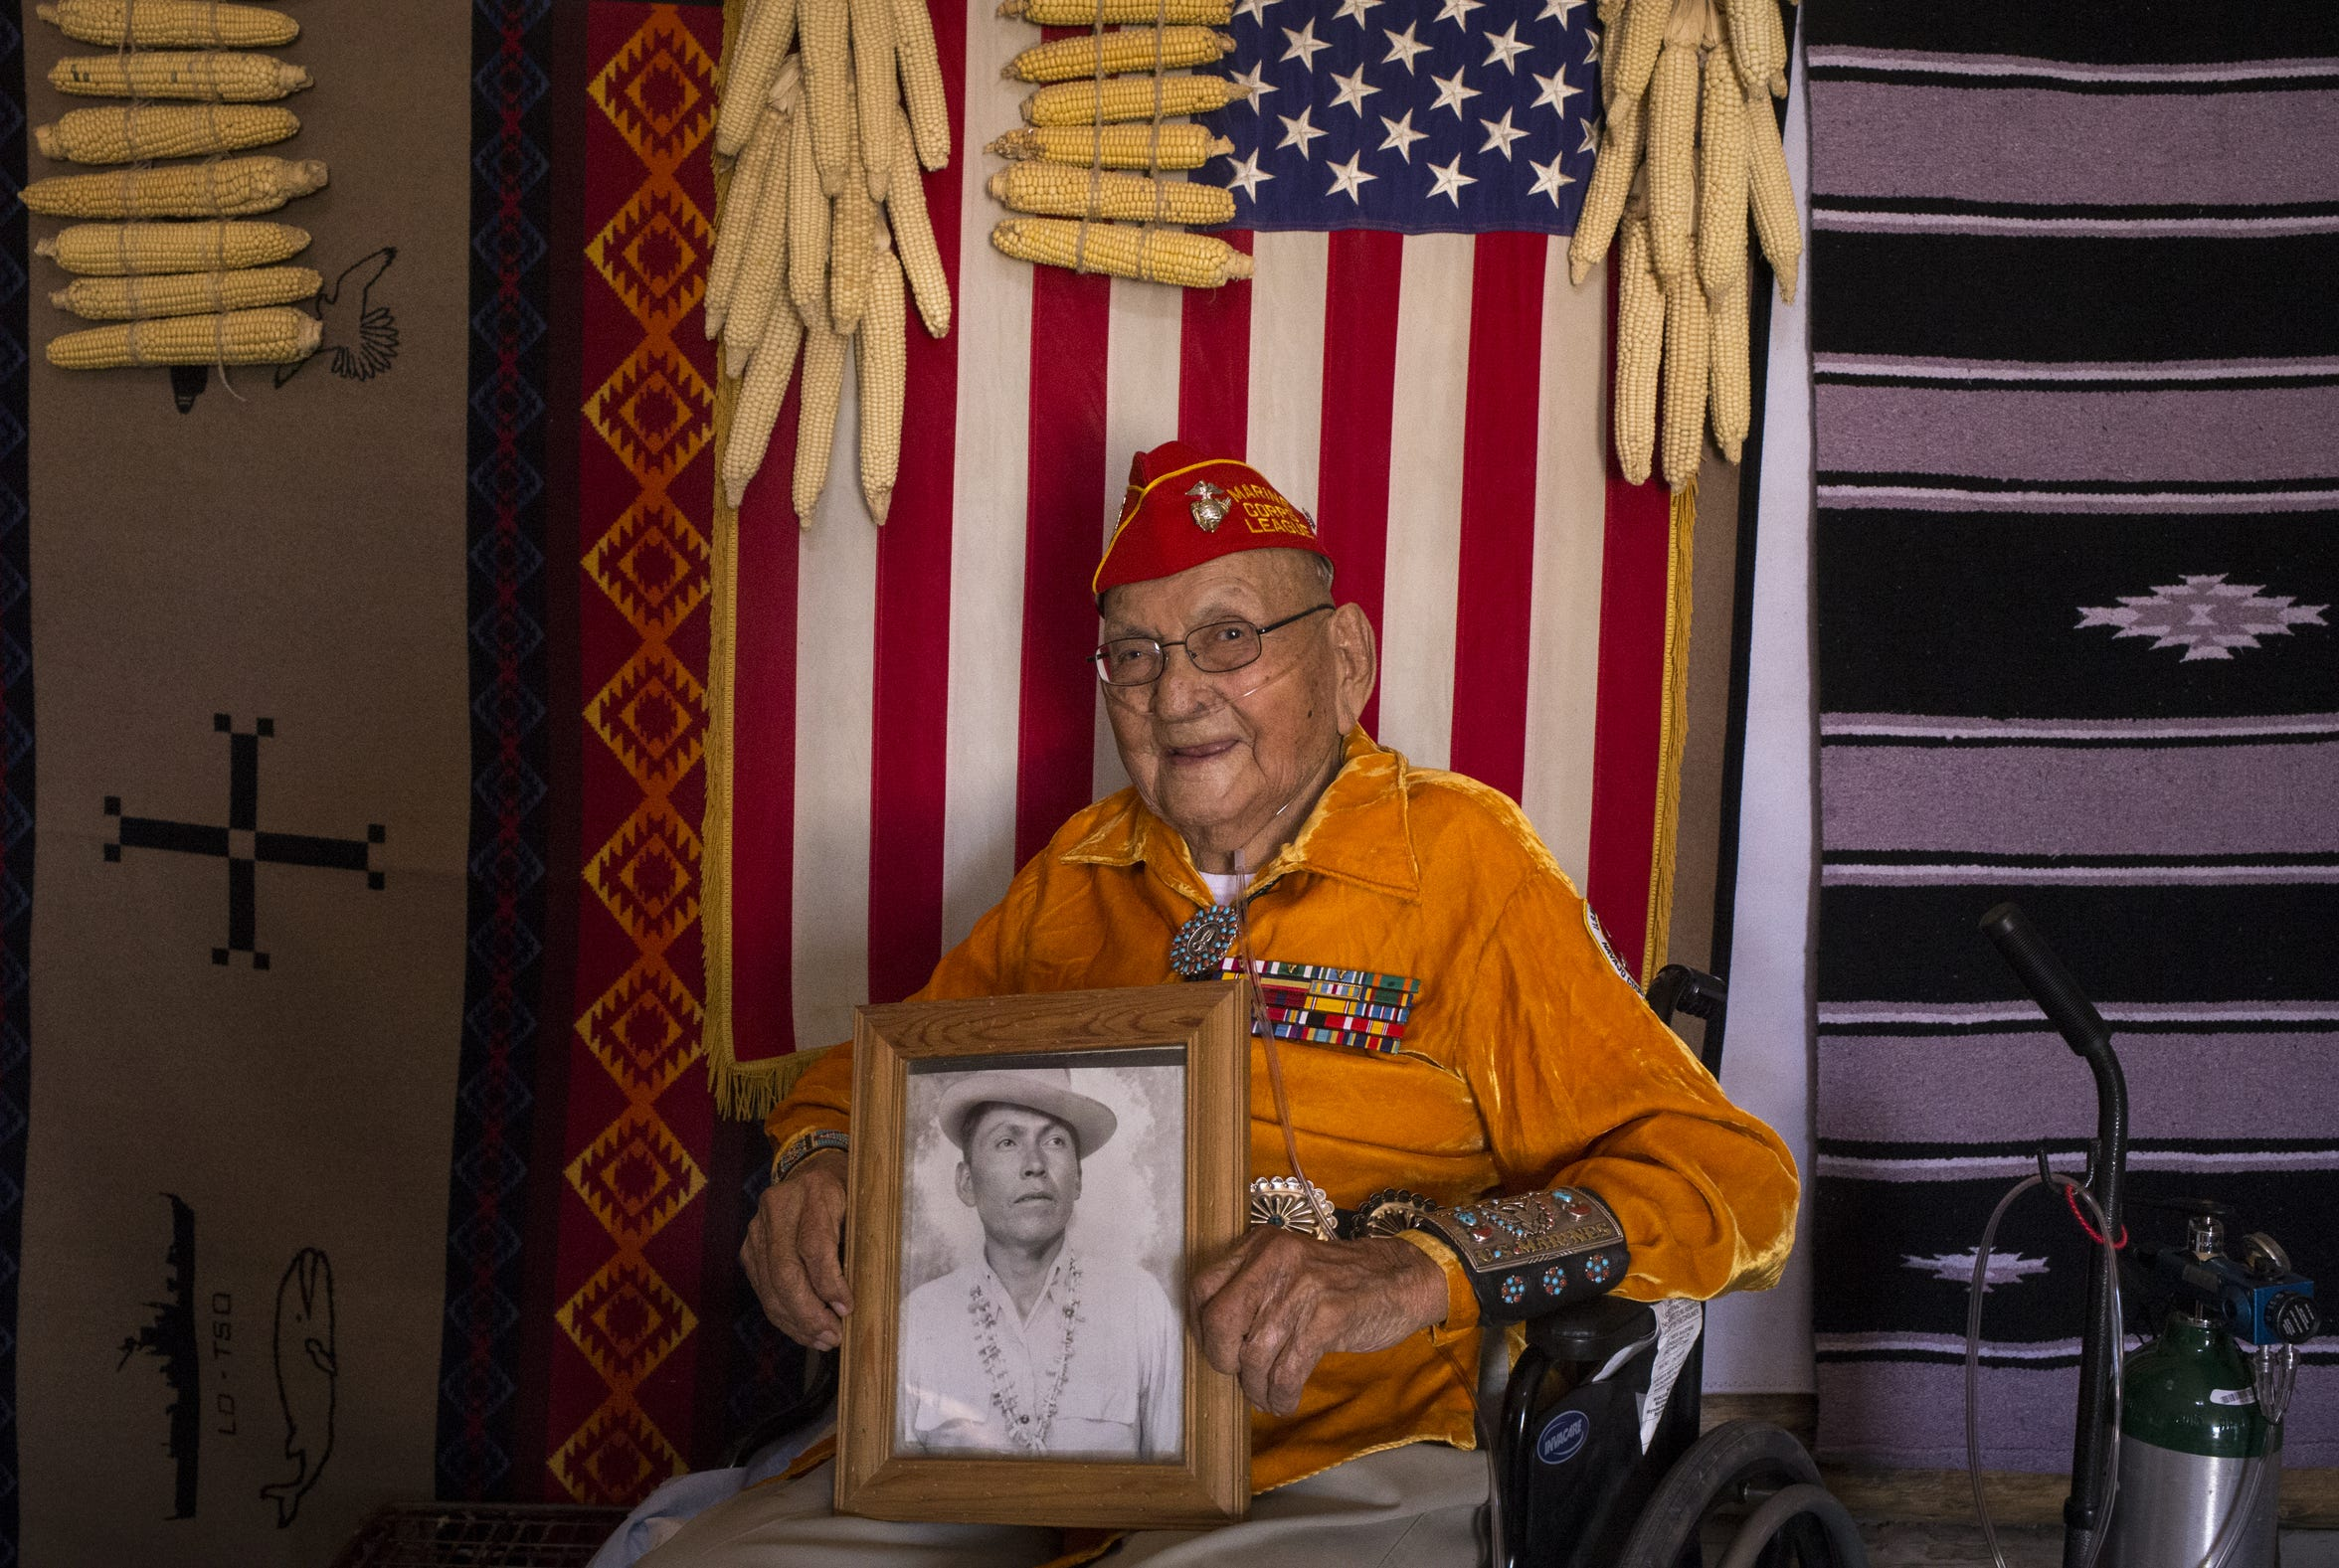 A portrait of Navajo Code Talker Joe Vandever Sr. holding an old photo of himself on July 10, 2019, in his family's hogan in Haystack, New Mexico.